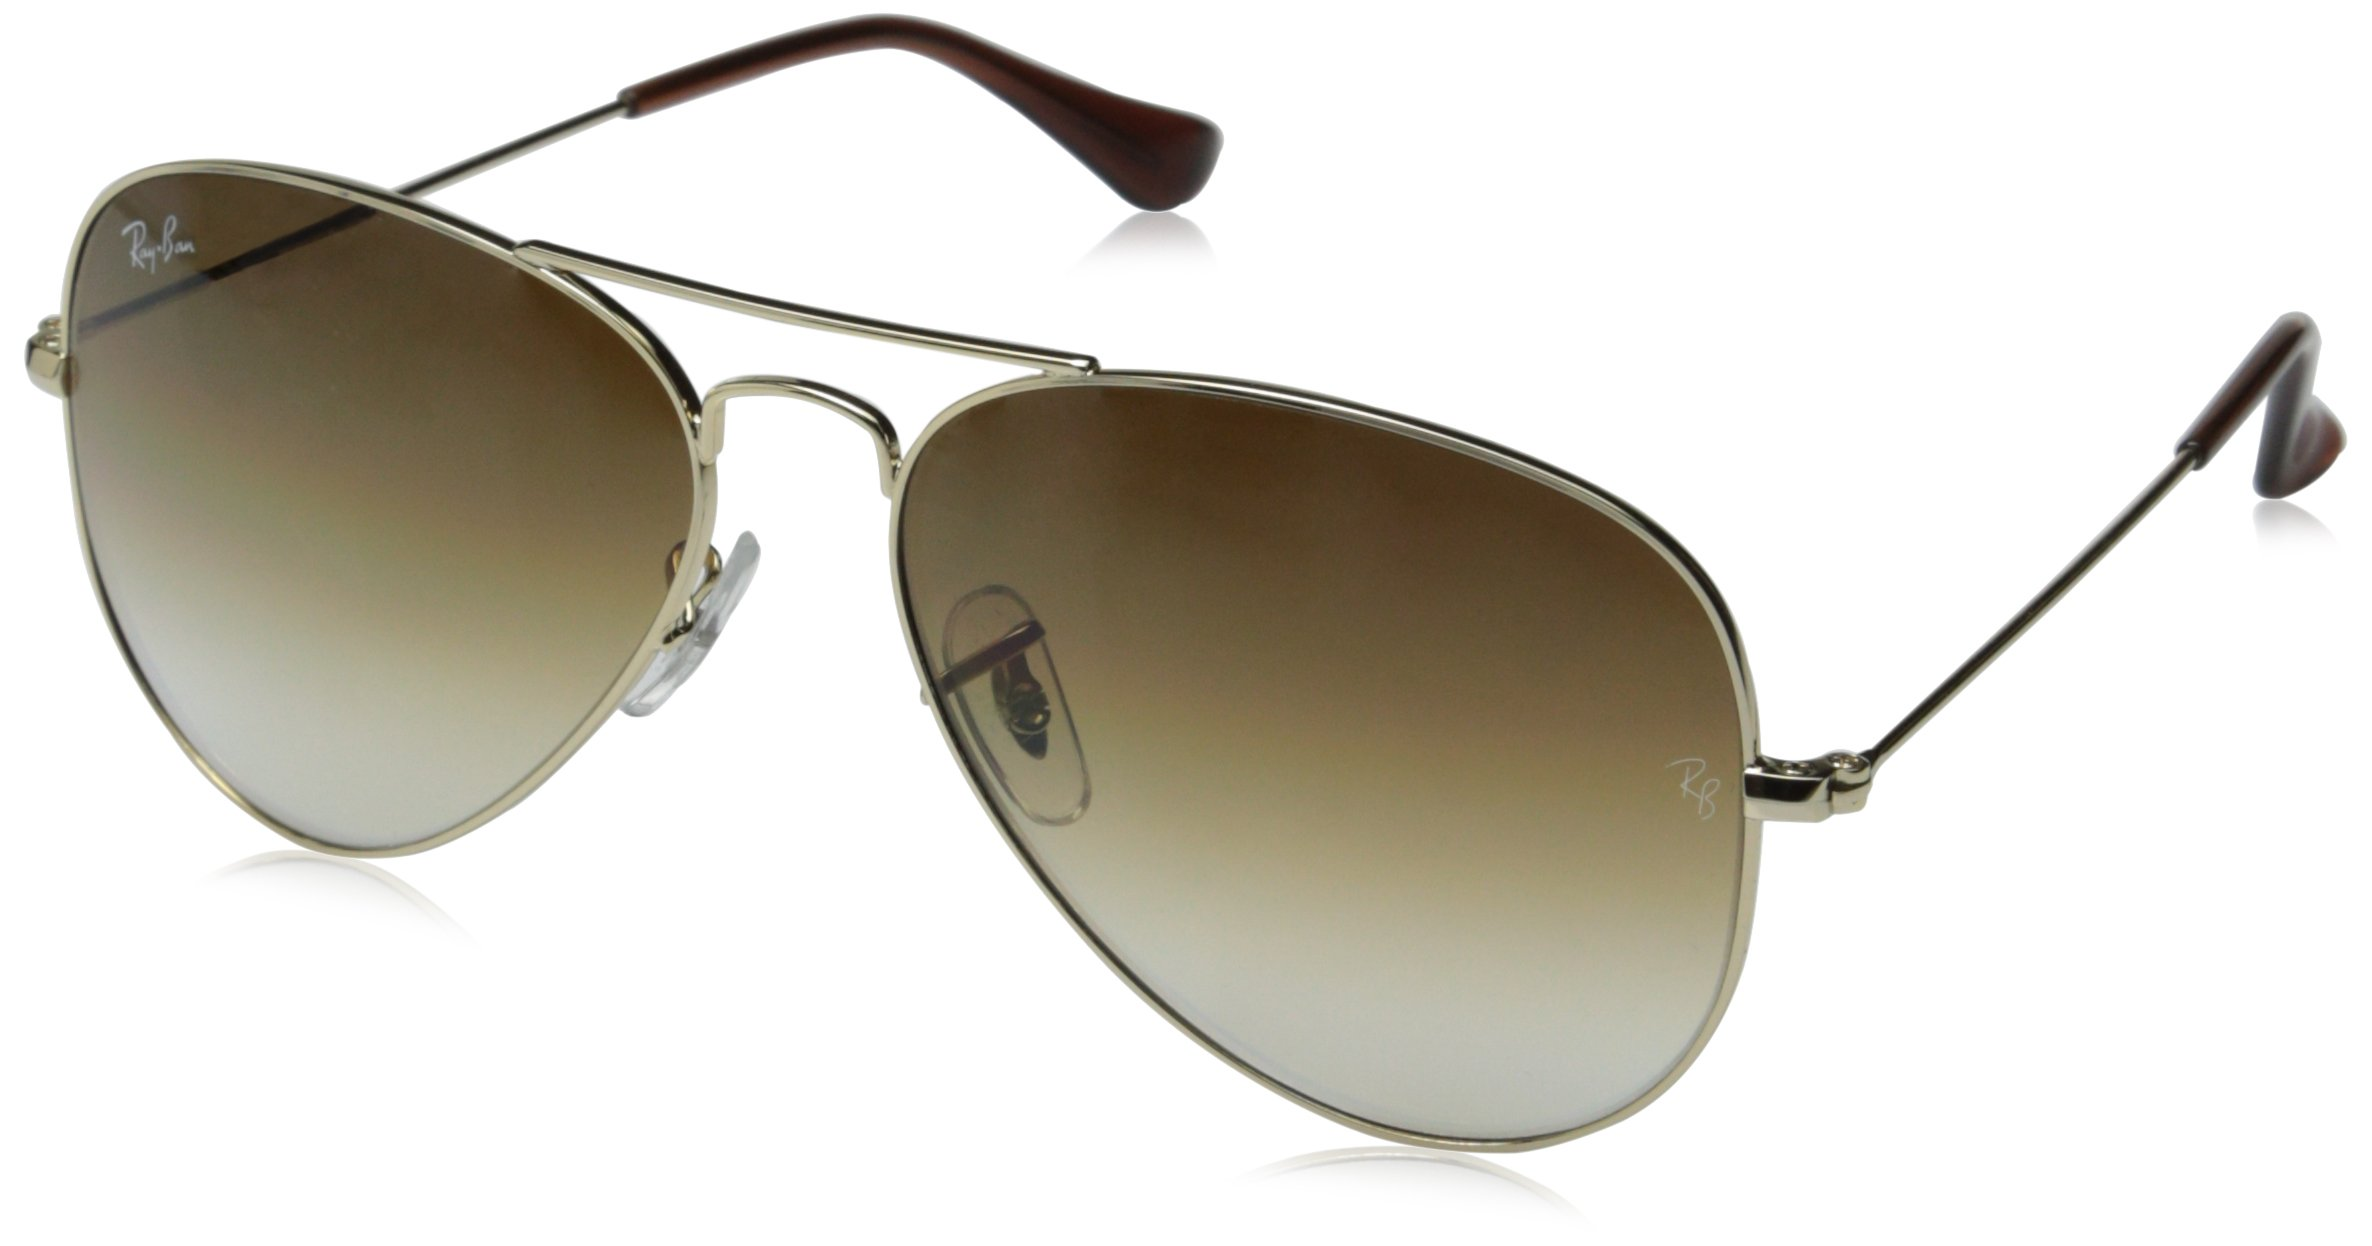 Ray-Ban Unisex Rb3025 Polarized 58Mm Sunglasses, 58Mm